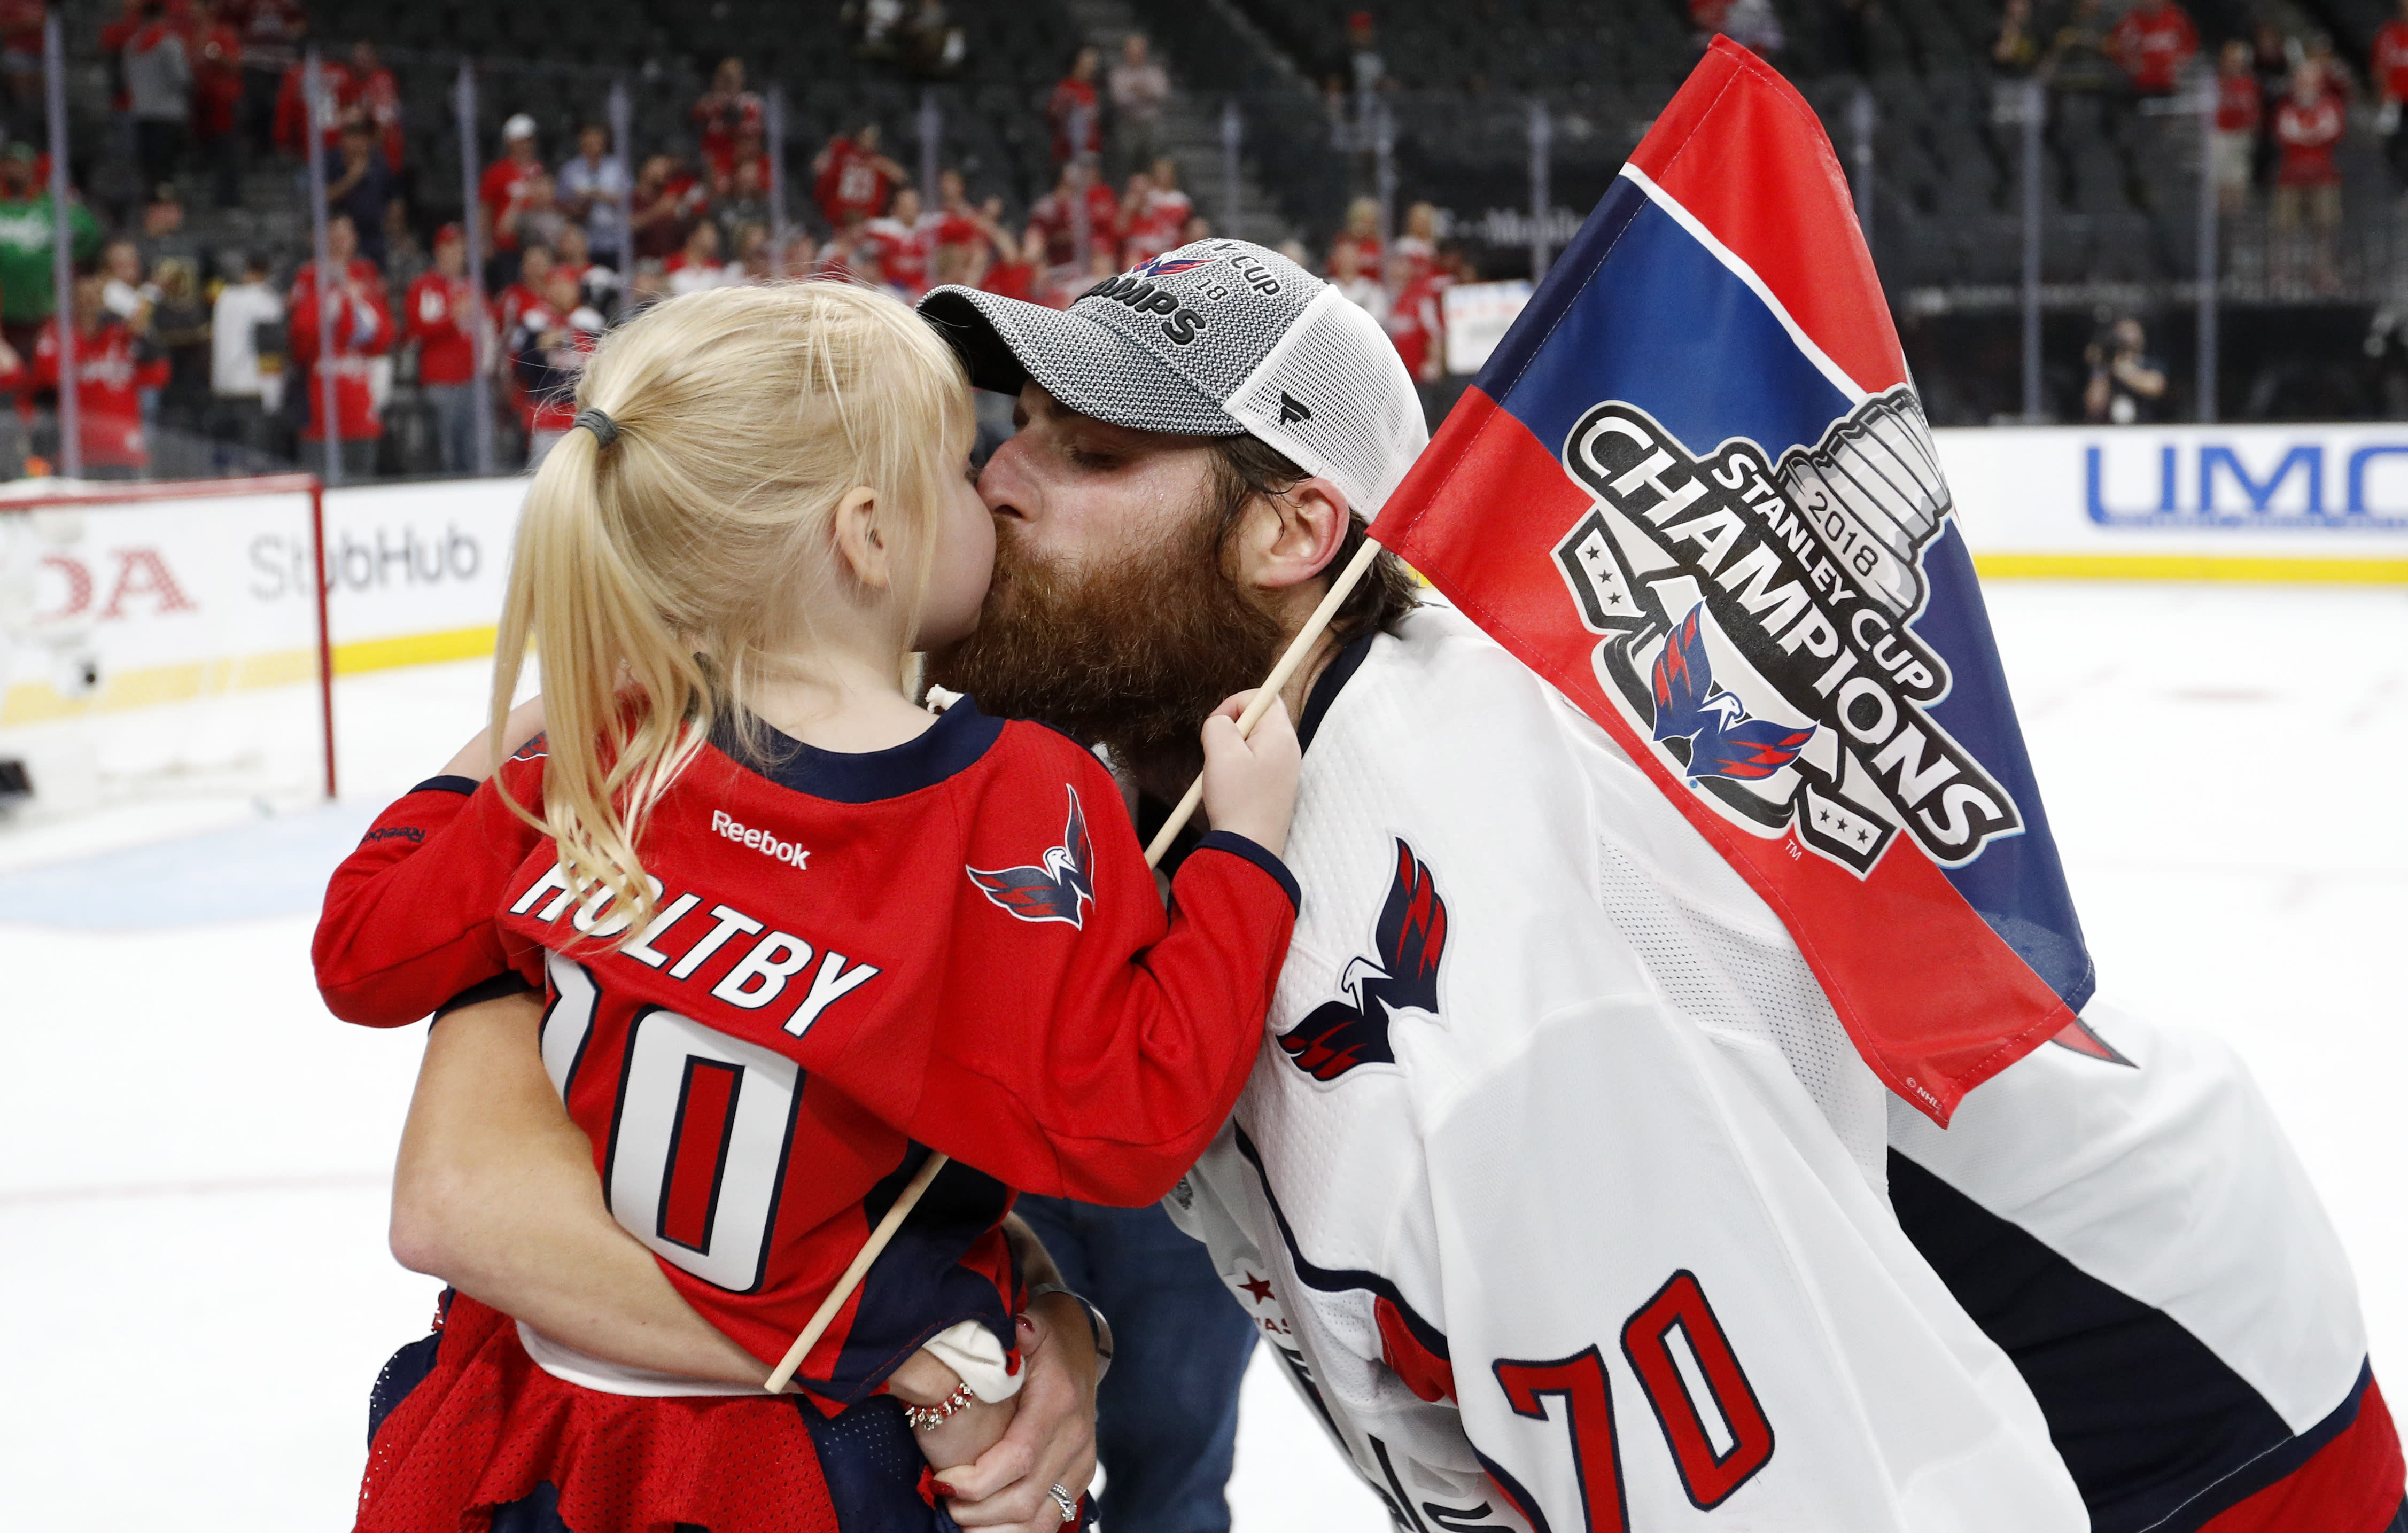 FILE - In this June 7, 2018, file photo, Washington Capitals goaltender Braden Holtby, right, kisses his daughter Belle after the Capitals defeated the Vegas Golden Knights 4-3 in Game 5 of the NHL hockey Stanley Cup Finals in Las Vegas. The past few weeks have seen several recent Stanley Cup winners get rid of members of their championship core. The Chicago Blackhawks moved on from Corey Crawford, the Washington Capitals did the same with Braden Holtby, the Pittsburgh Penguins traded fellow goalie Matt Murray and forward Patric Hornqvist and the St. Louis Blues signing Torey Krug means captain Alex Pietrangelo will sign elsewhere. (AP Photo/John Locher, File)